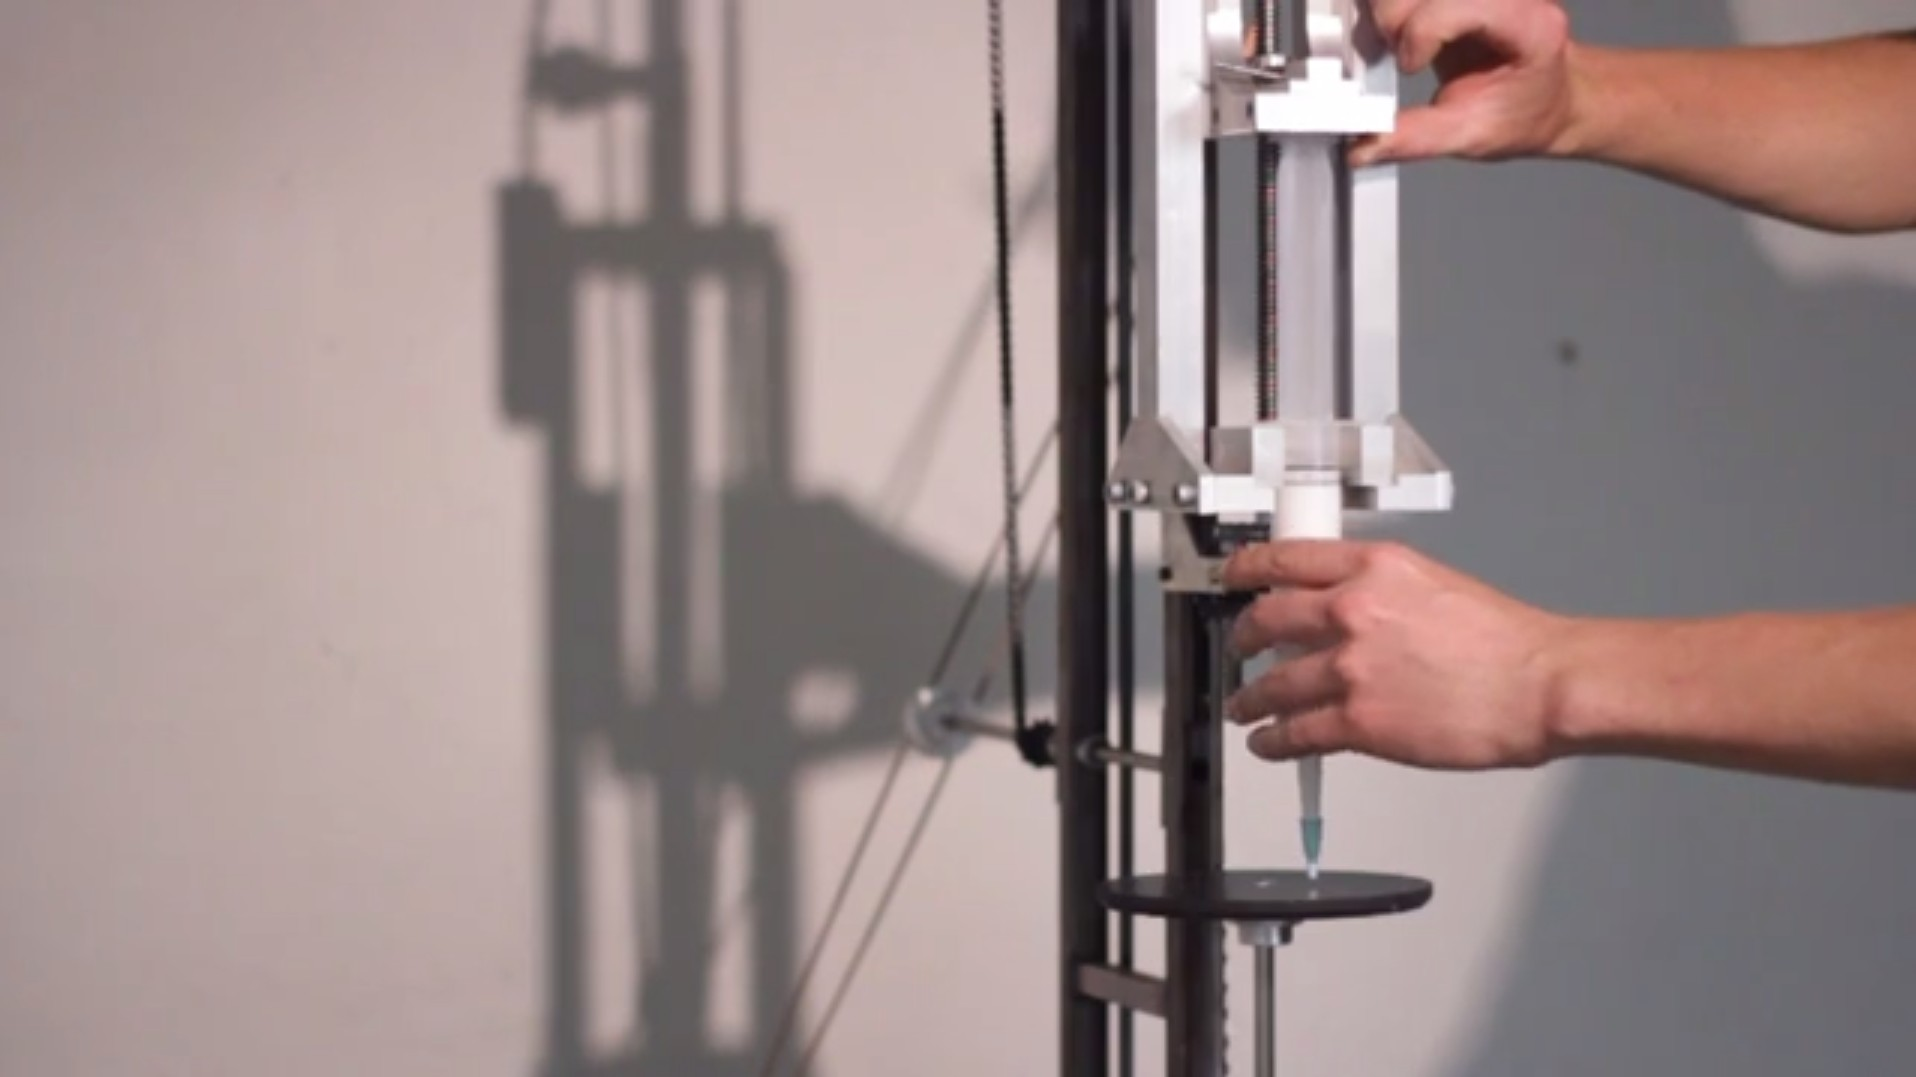 Now We Can 3D Print Stuff Without Computers or Electricity